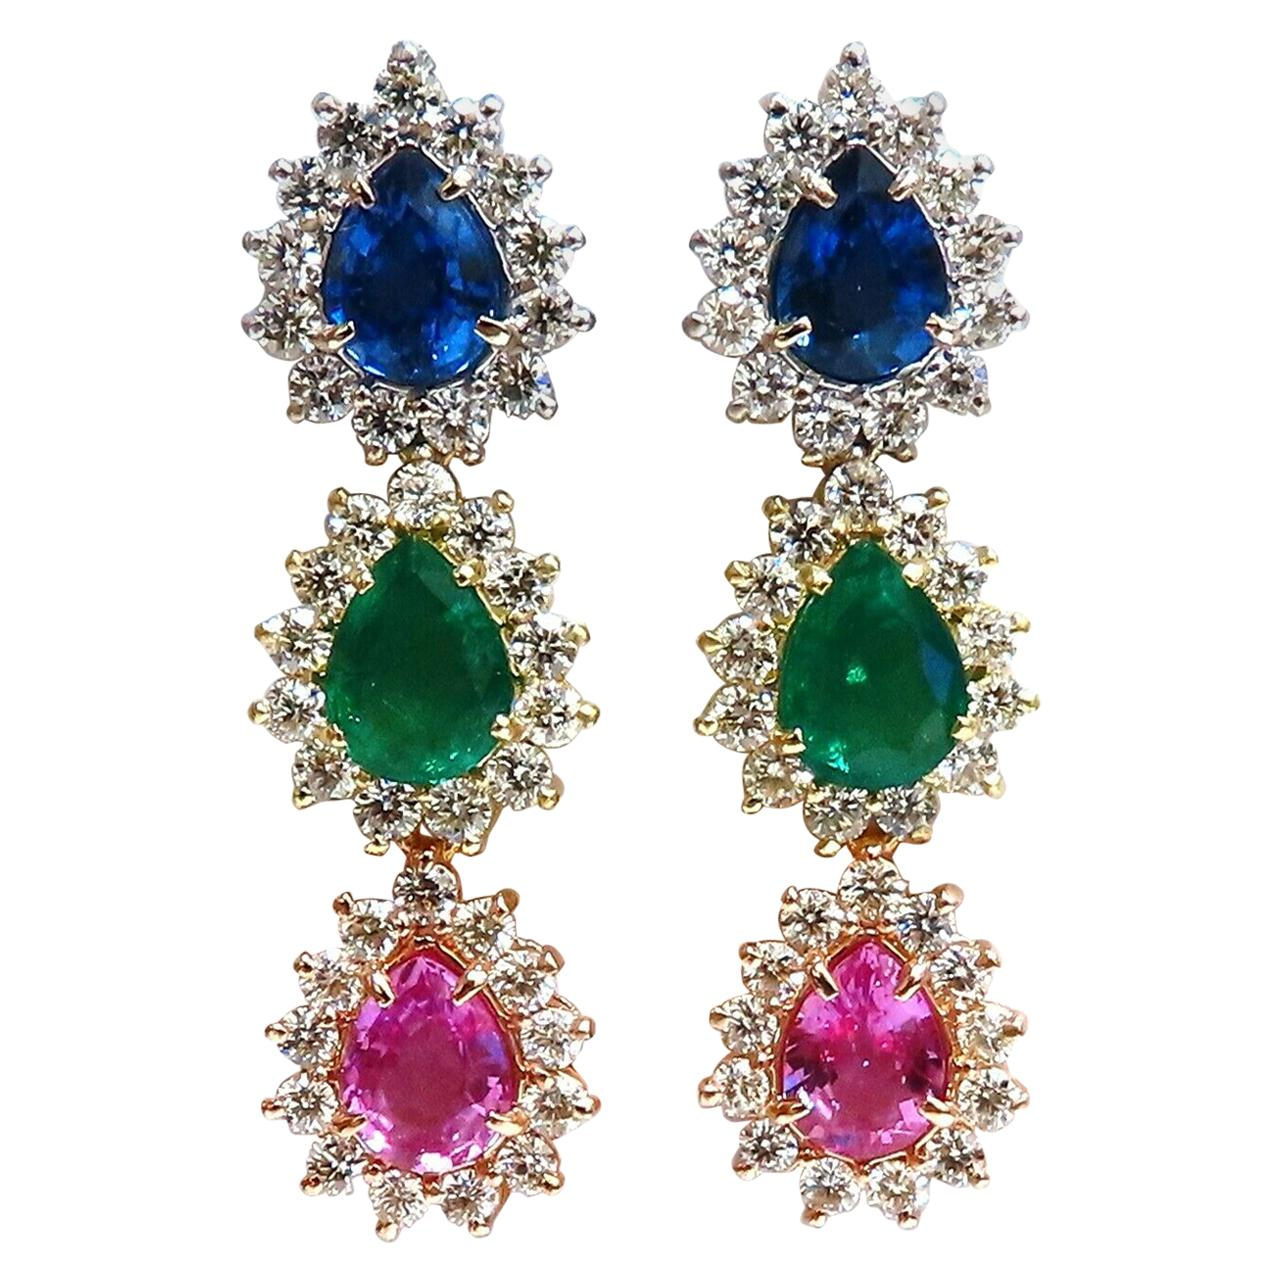 13.24Ct Natural Emeralds and Sapphires Three-Tier Dangle Earrings 18 Karat Pears